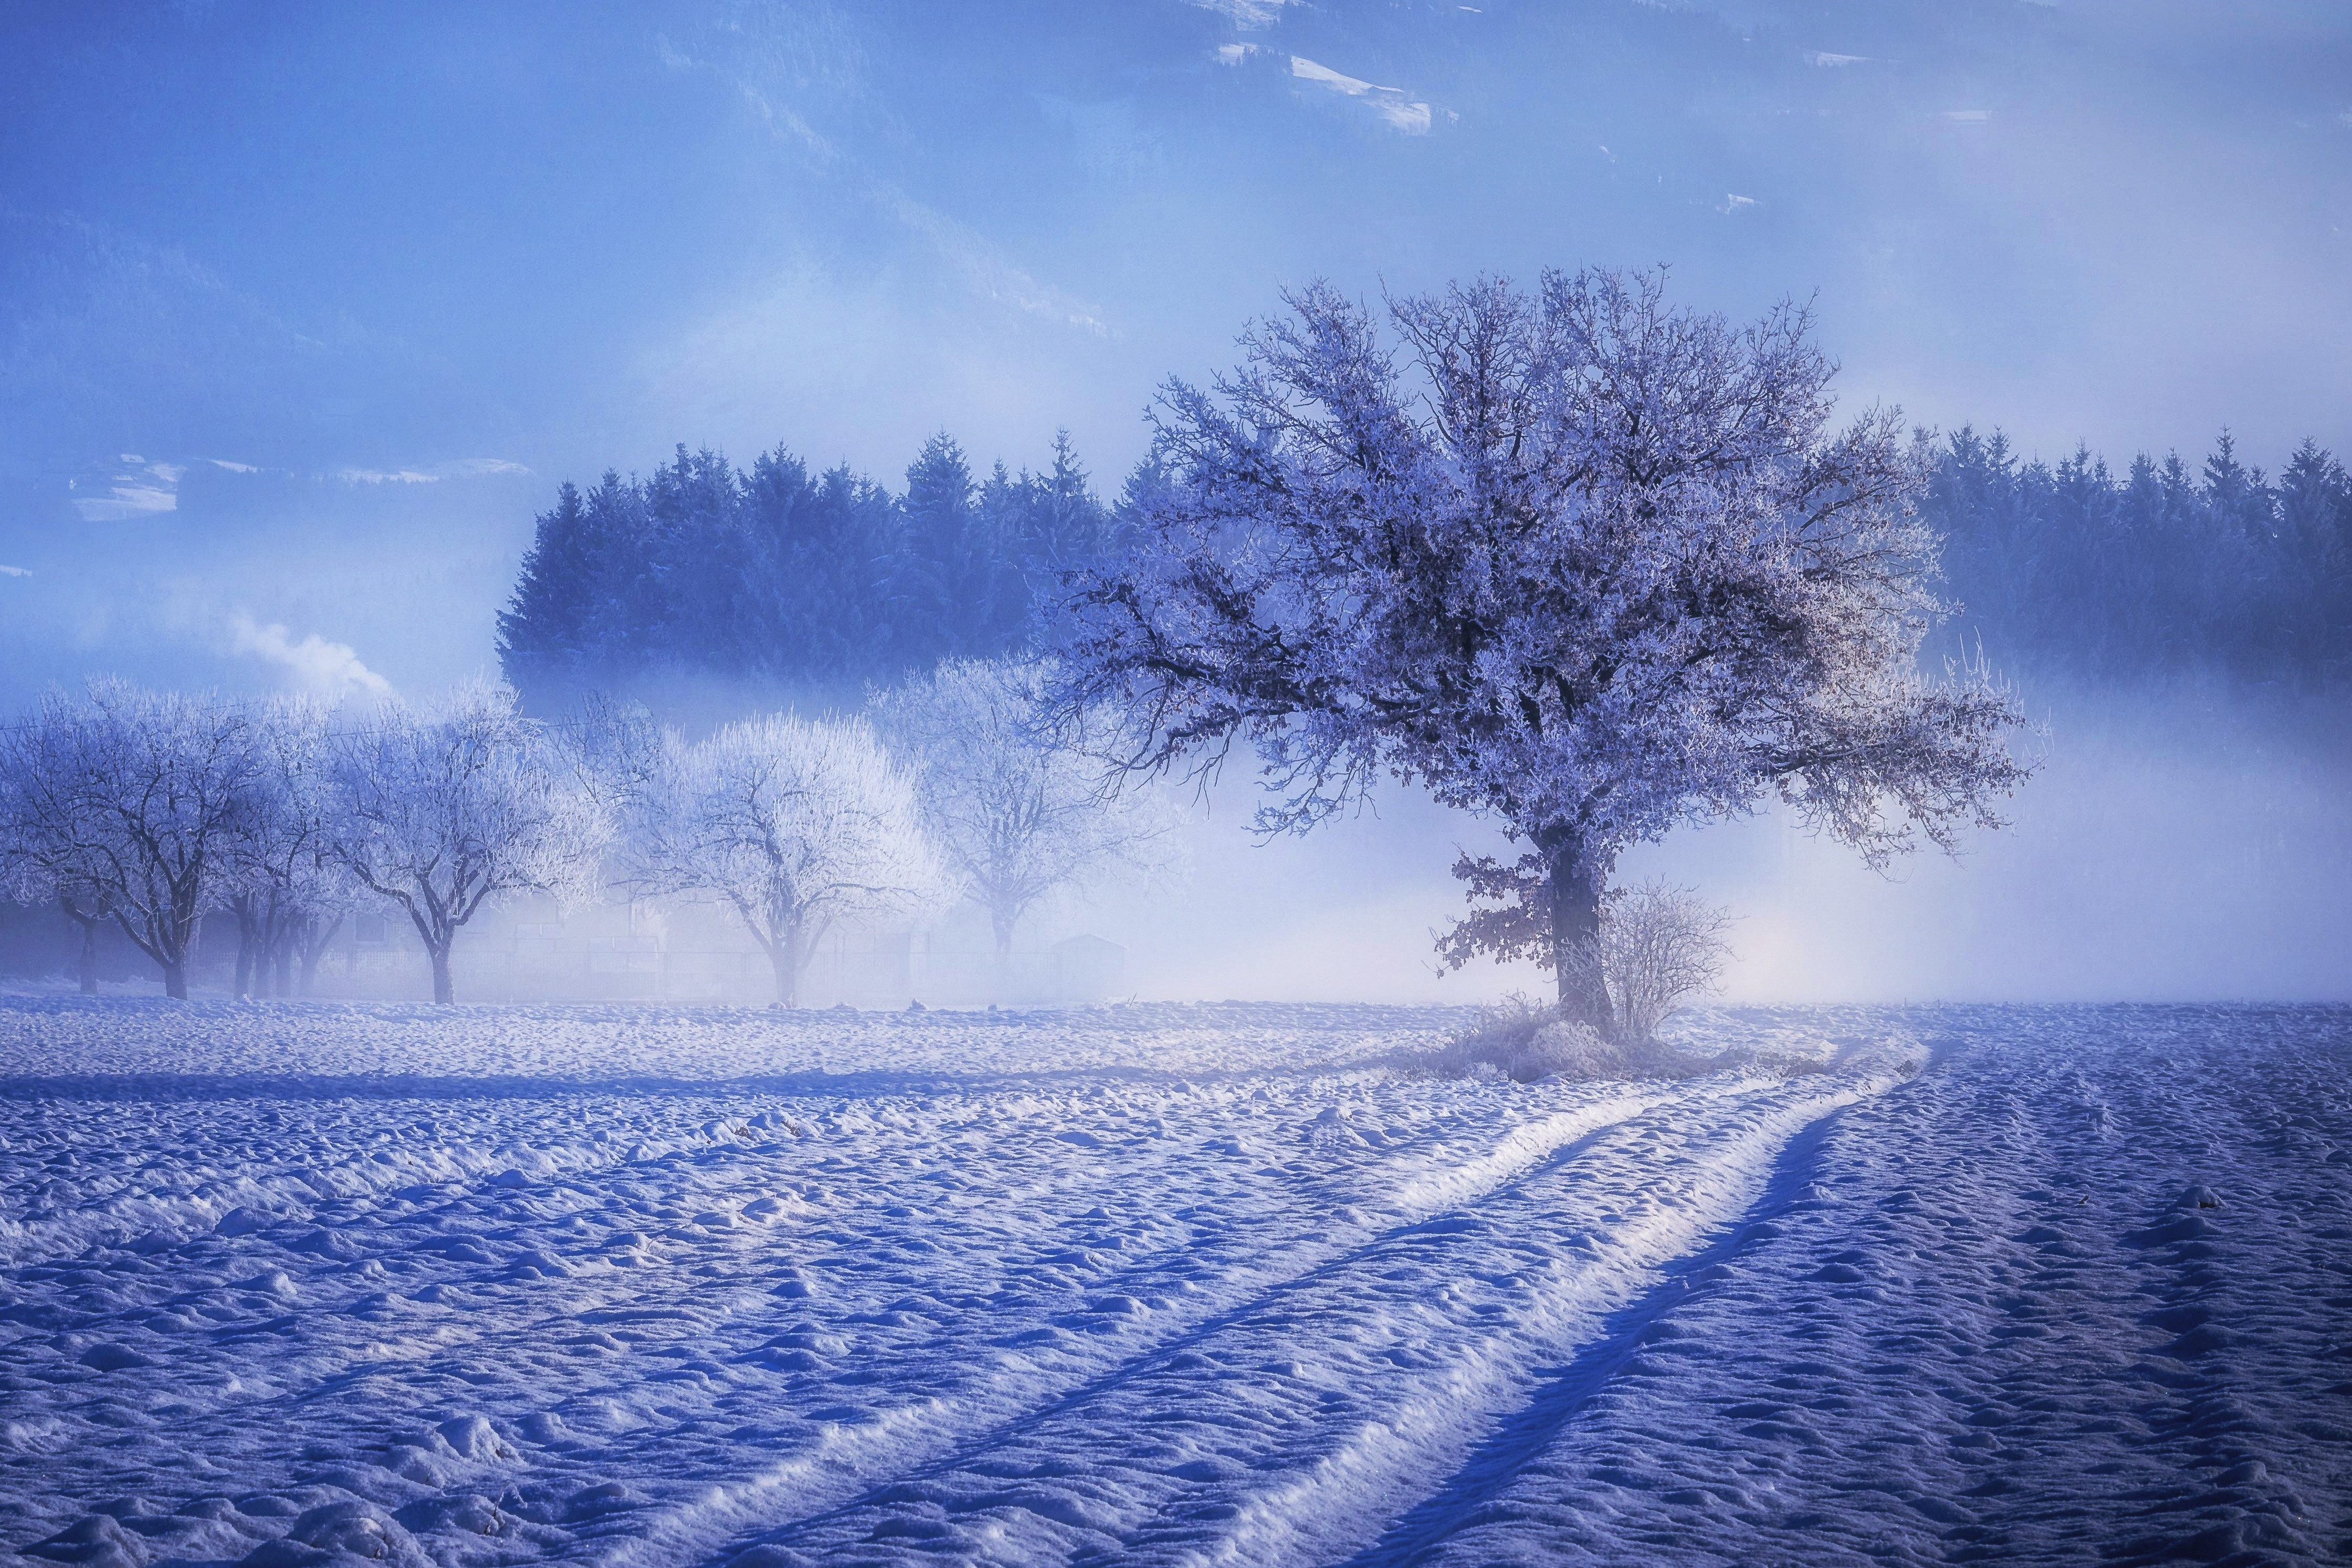 4k Nature Wallpaper Winter France: 1920x1080 Trees Covered With Snow Fog Landscape Winter 4k